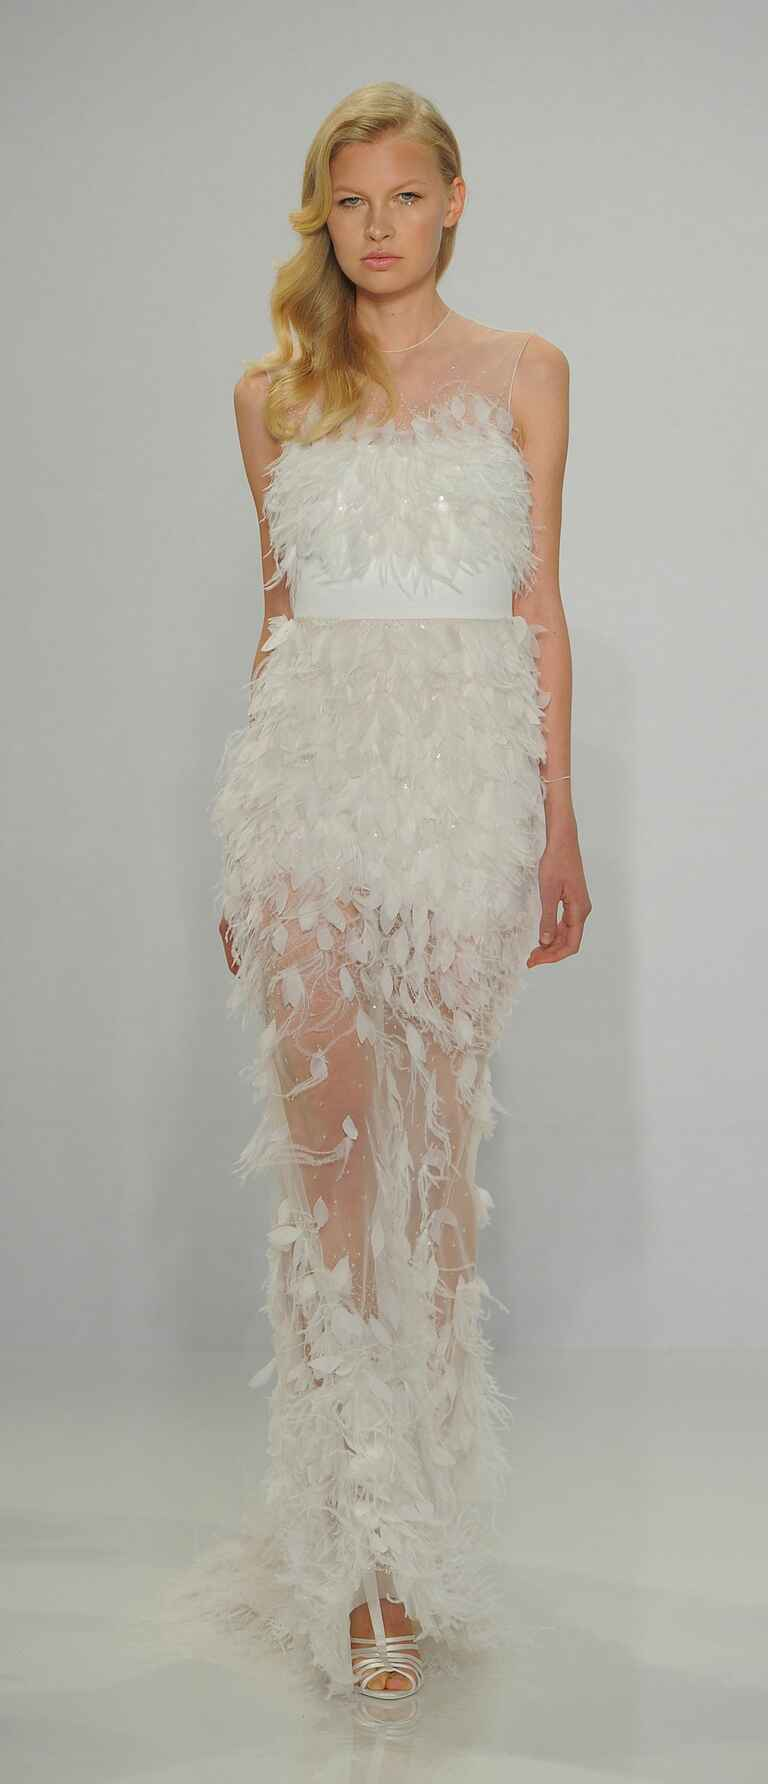 Christian Siriano Spring 2017 feather appliqué column gown wedding dress